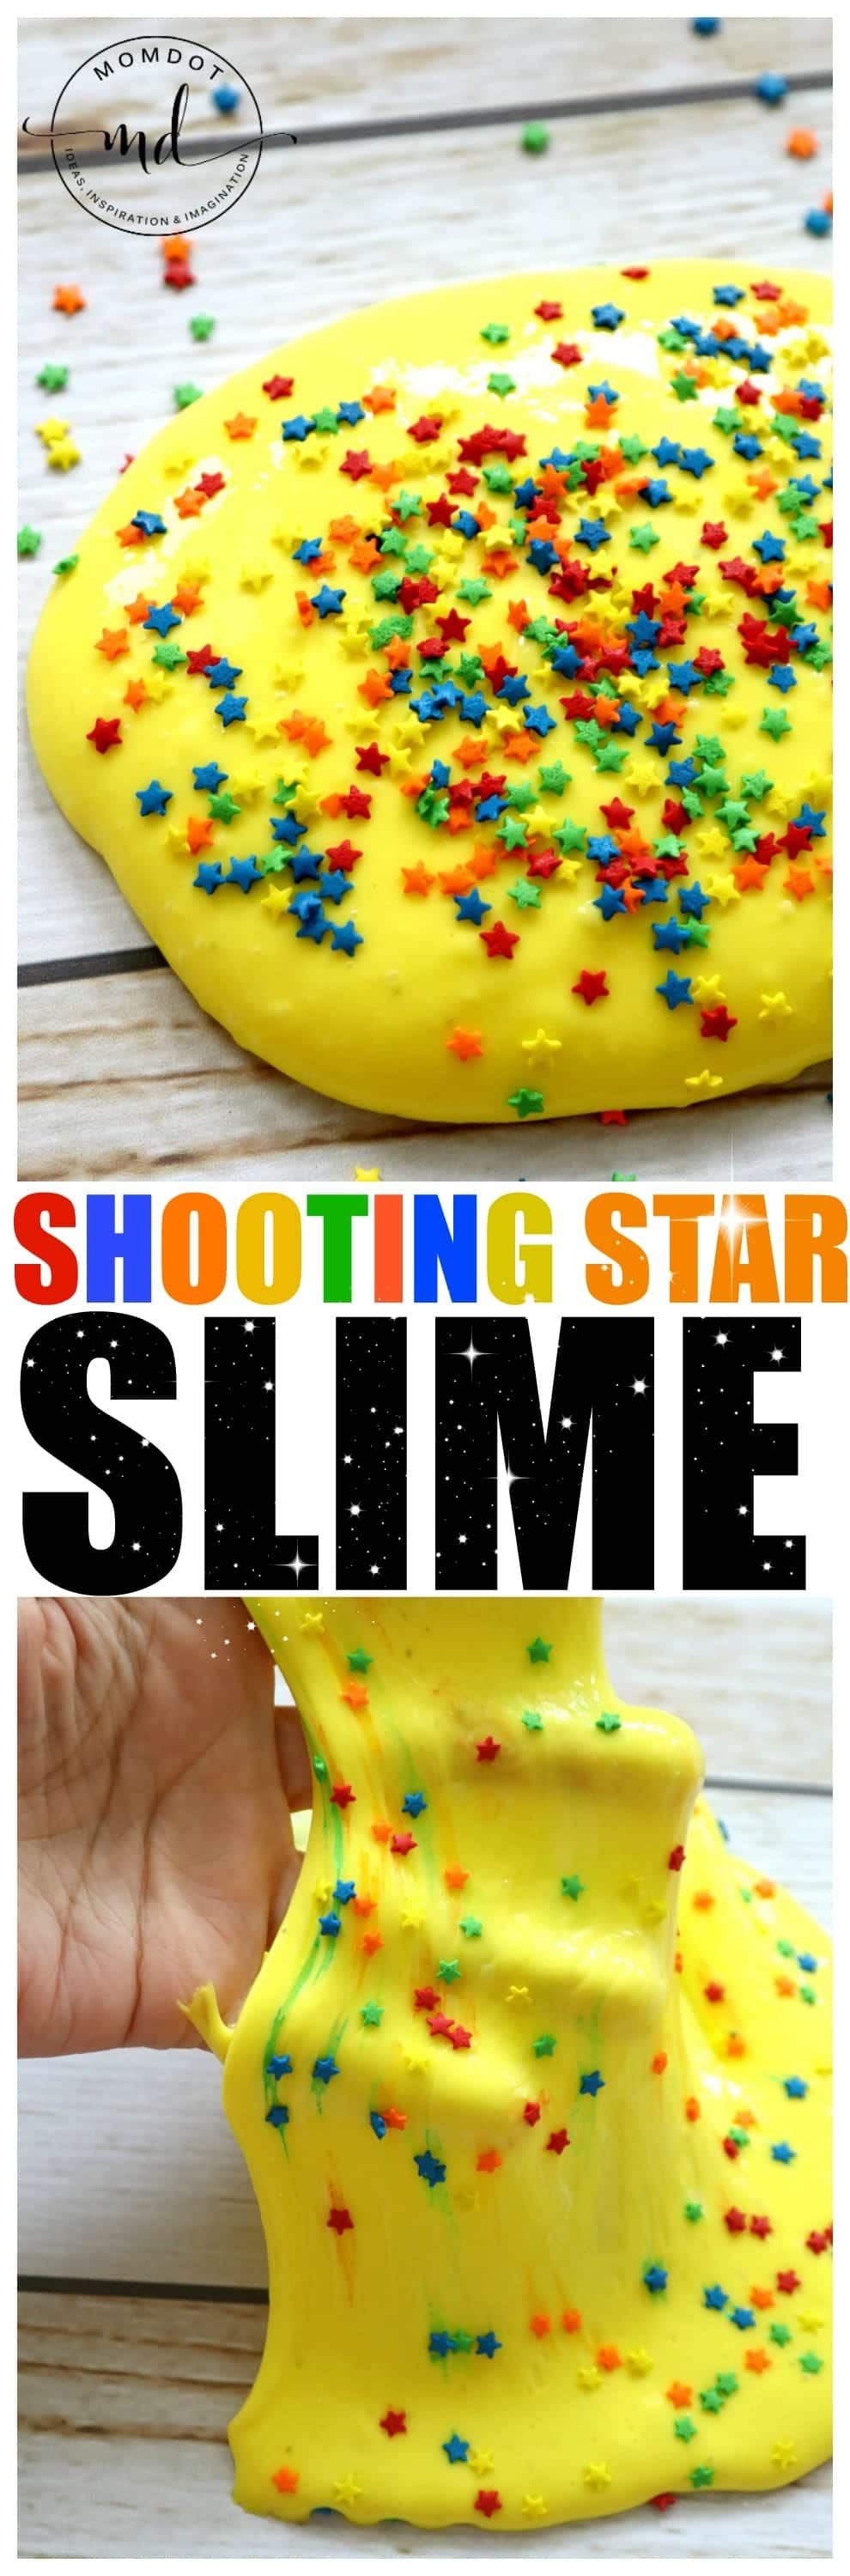 Slime Recipe: Shooting Star Slime, Perfect Slime recipe that comes alive with STARS